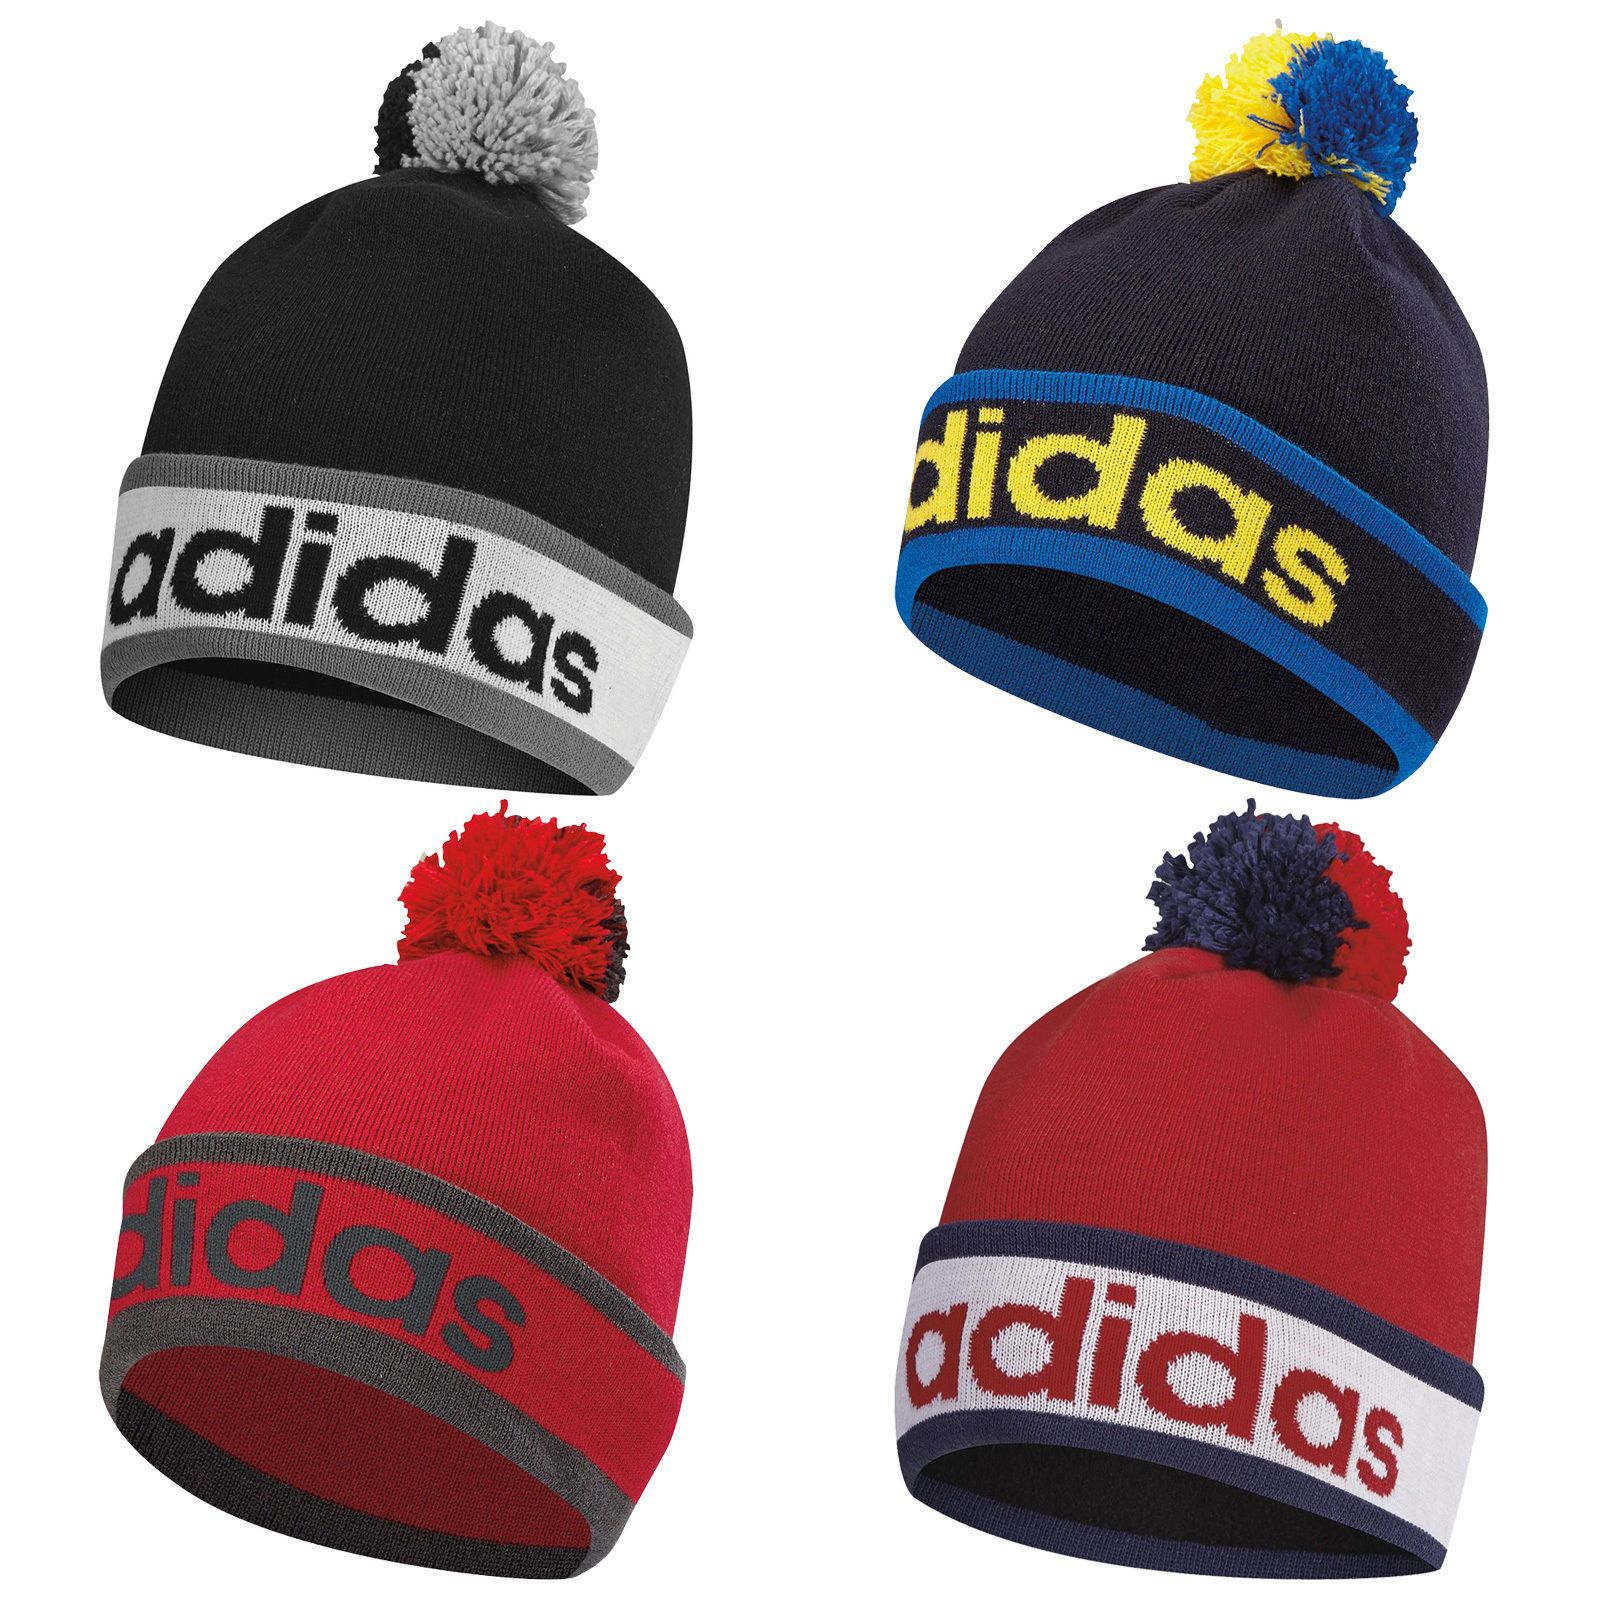 02a18053 Adidas mens pom pom beanie hat - new knit #bobble cap #winter golf #